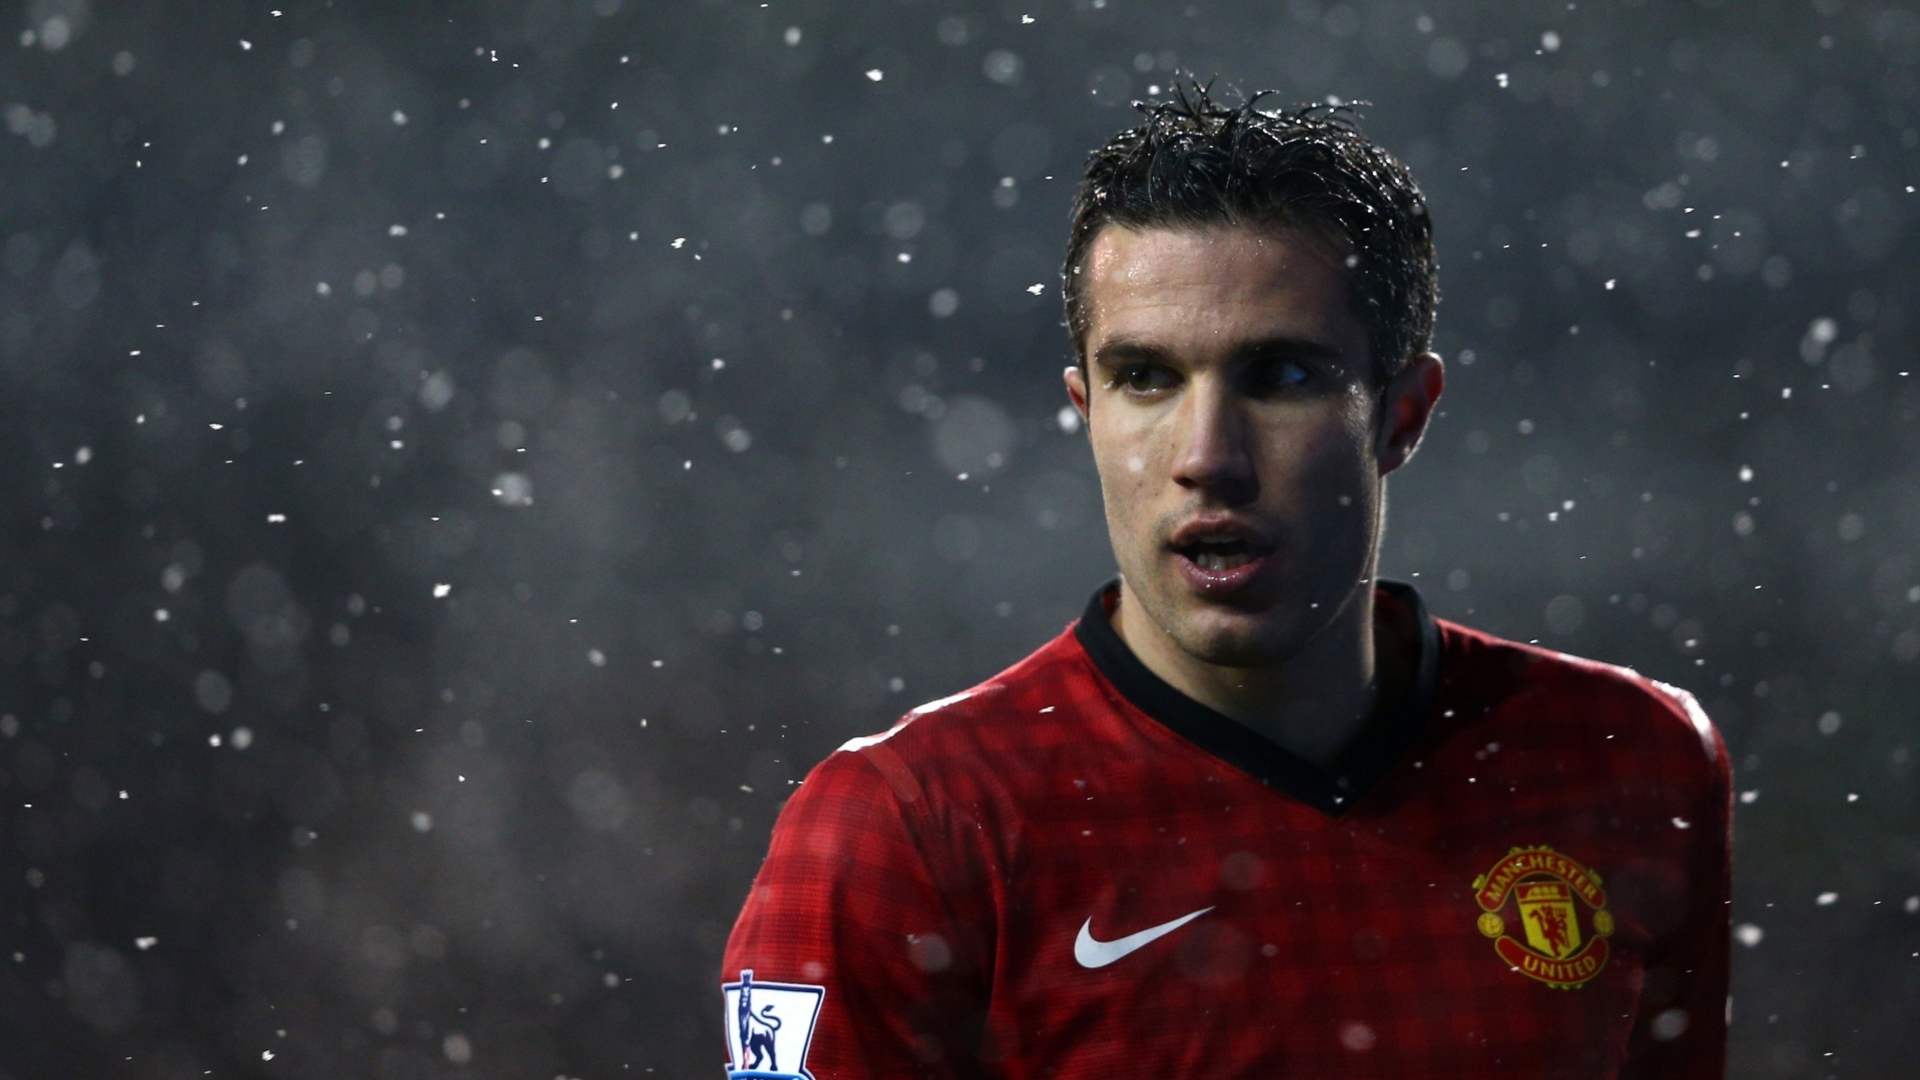 robin van persie wallpapers high resolution and quality download